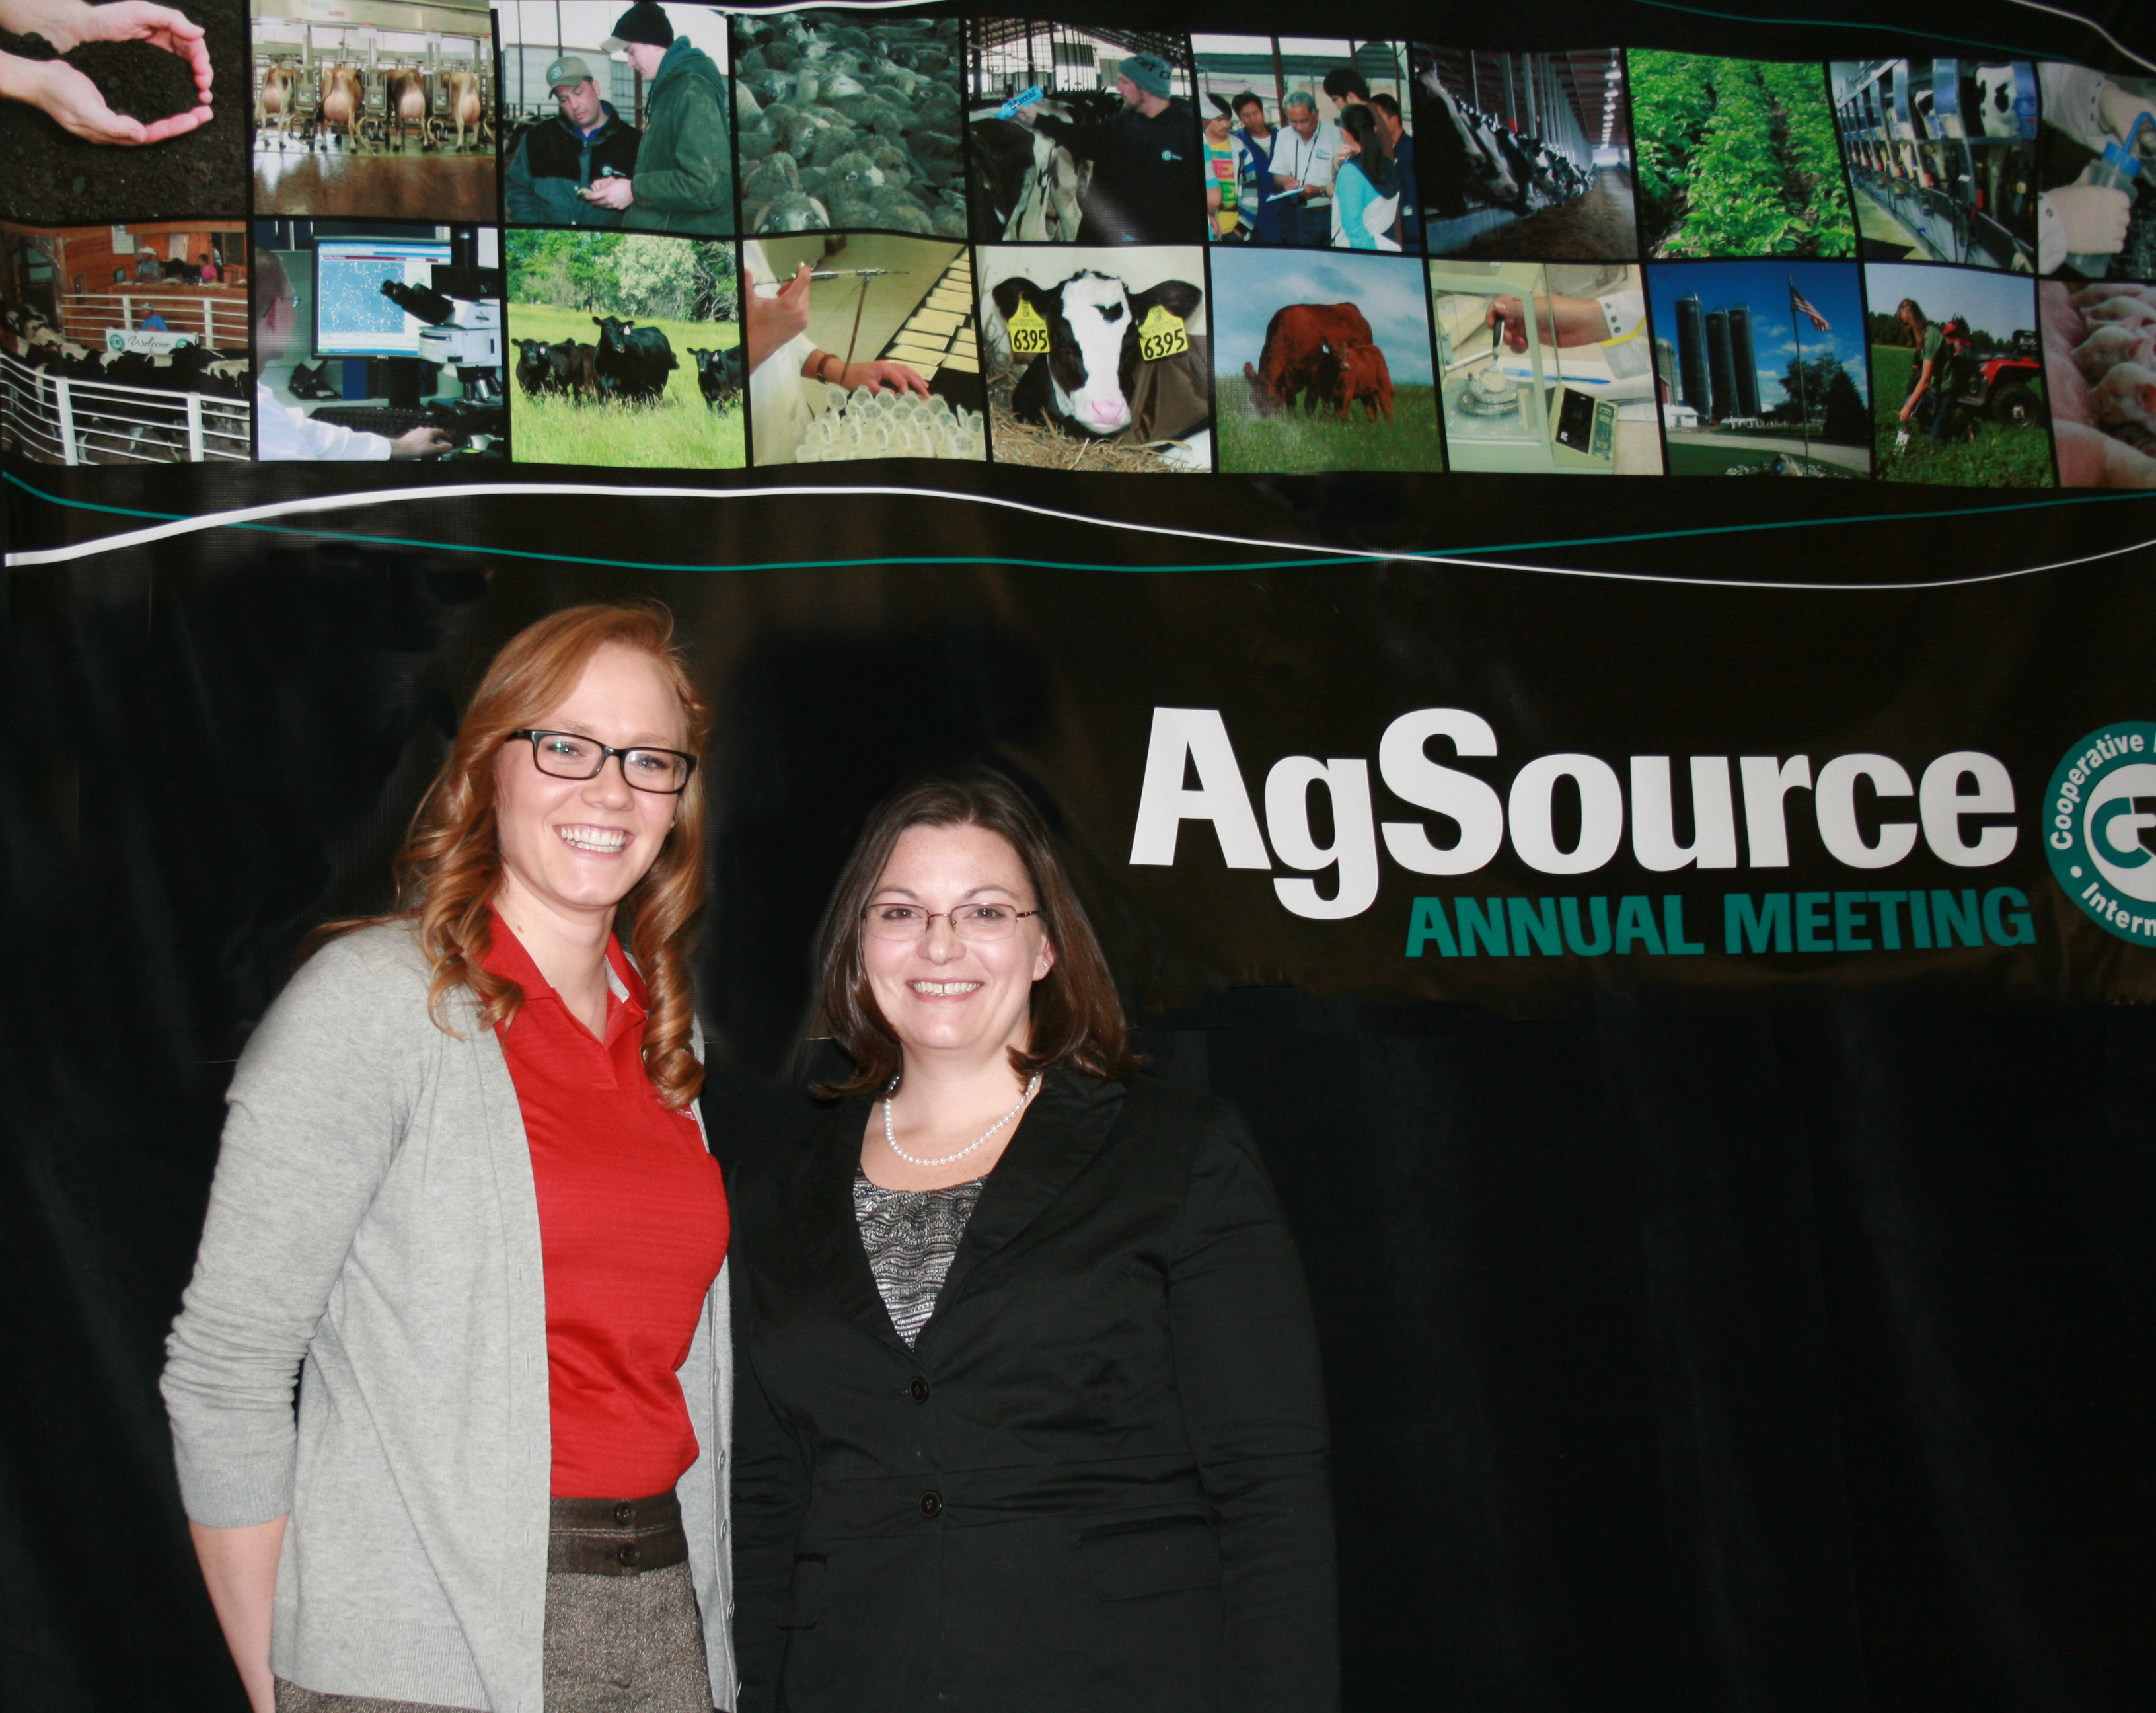 Tawny Chandler and Dr. Heather White of the Department of Dairy Science